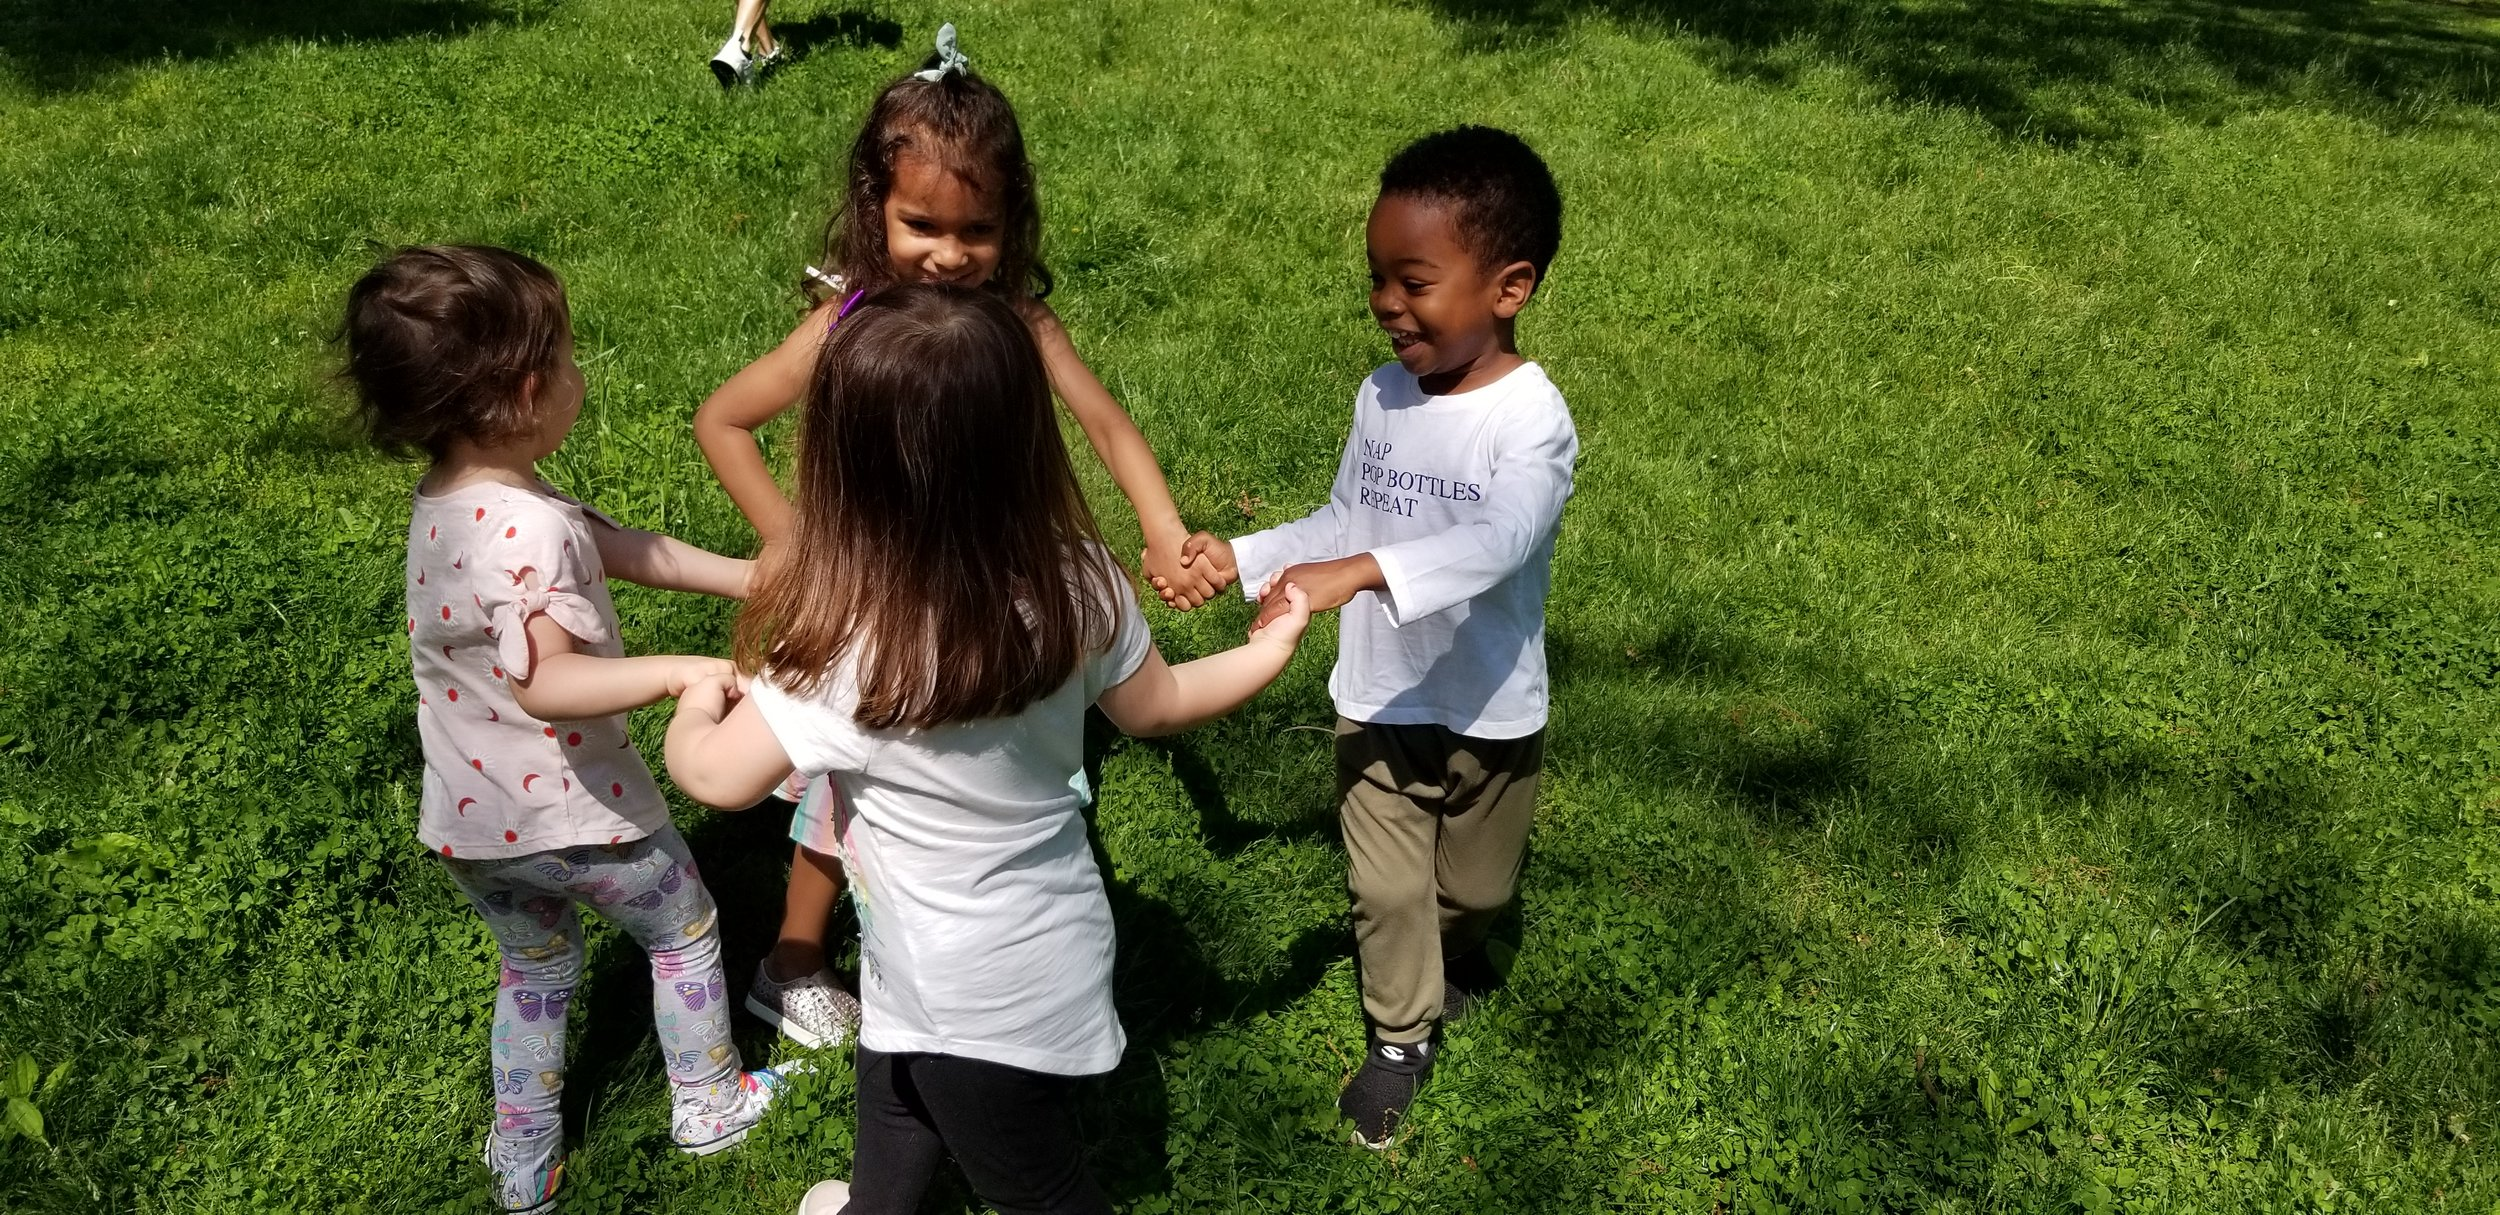 Ring around the Rosie with Classmates